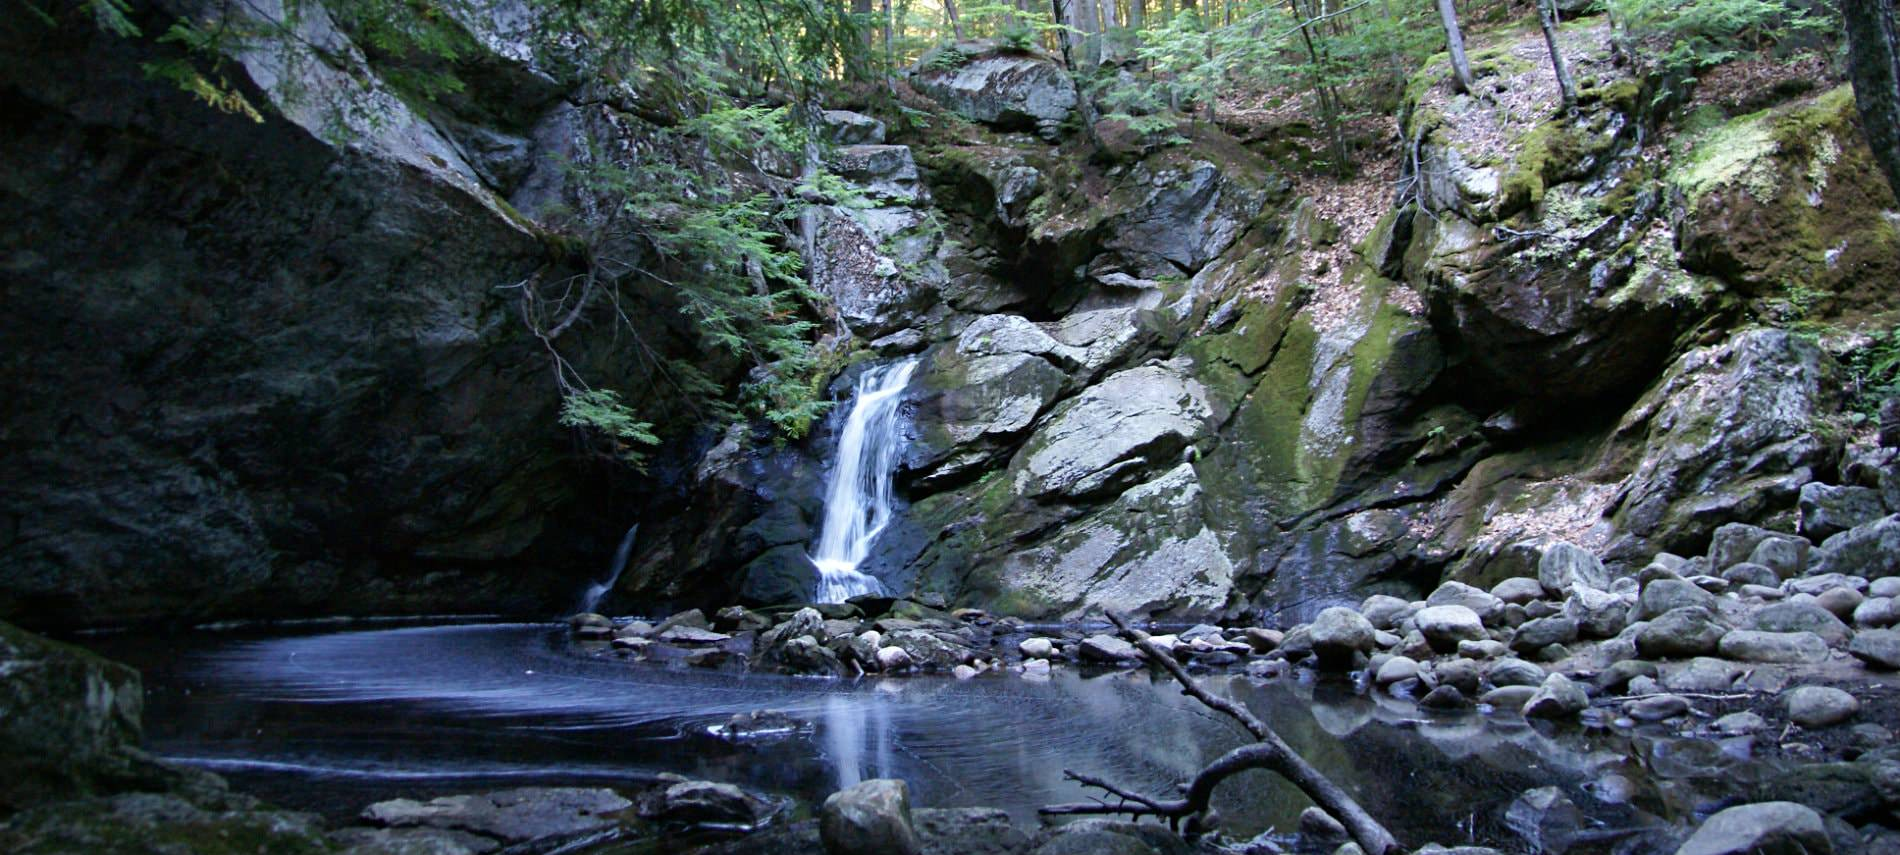 Small waterfall streaming into a pool of water surrounded by rock and greenery